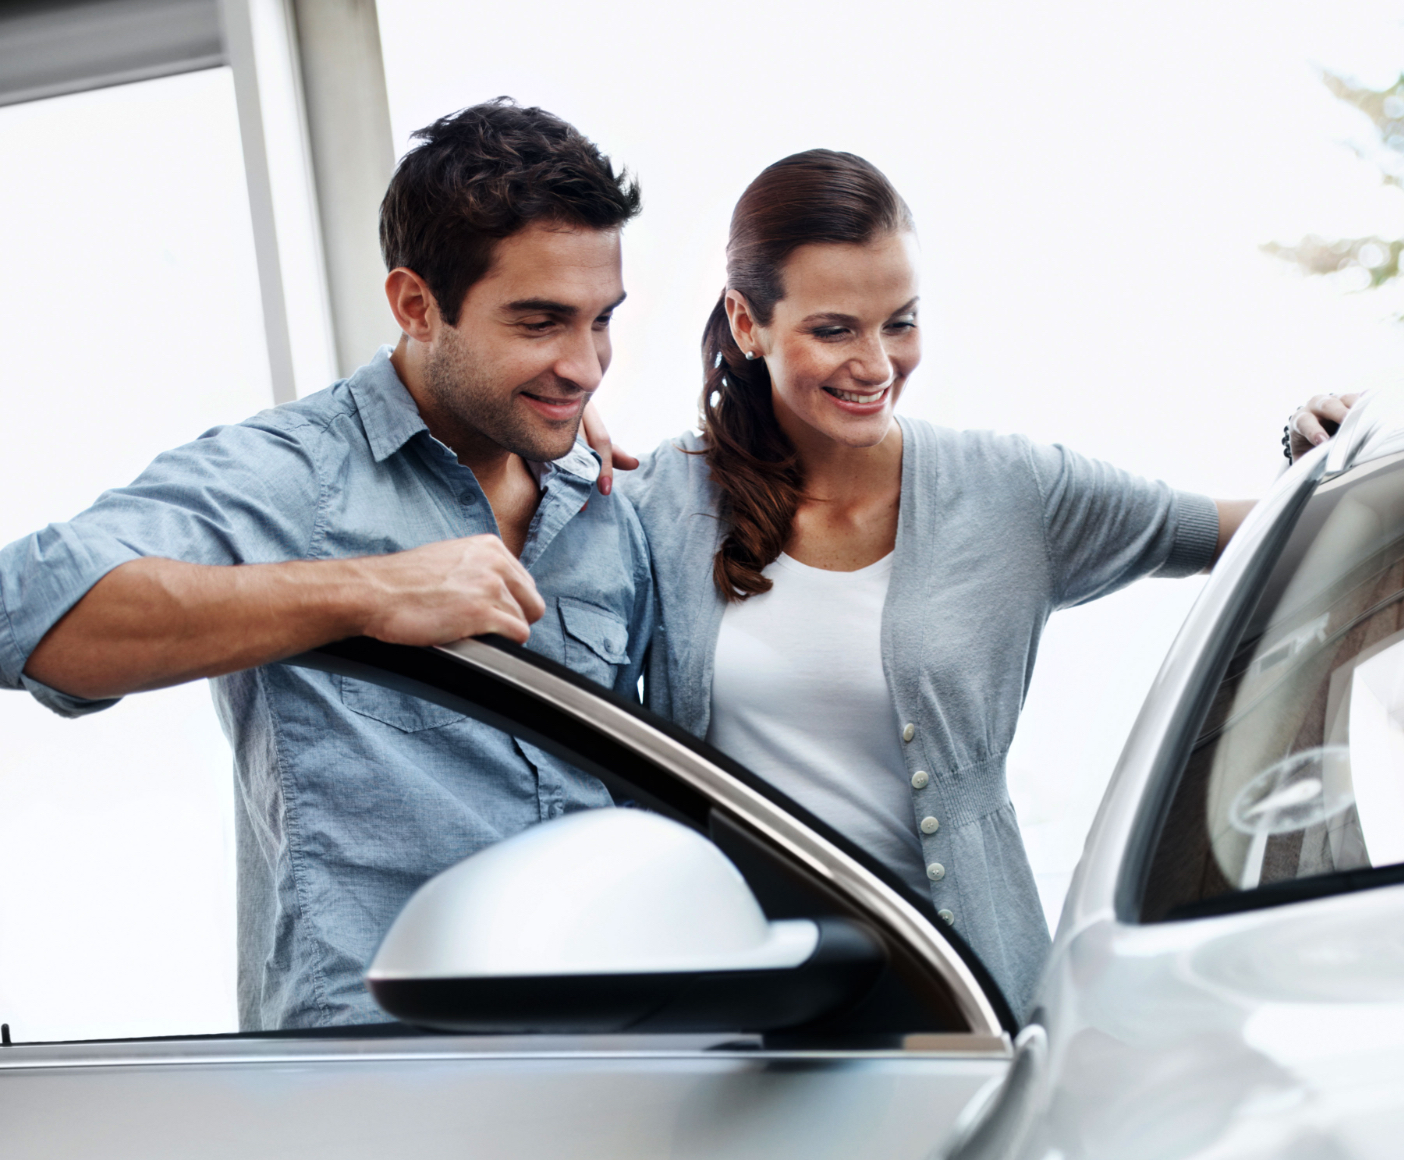 Young couple looking at a car